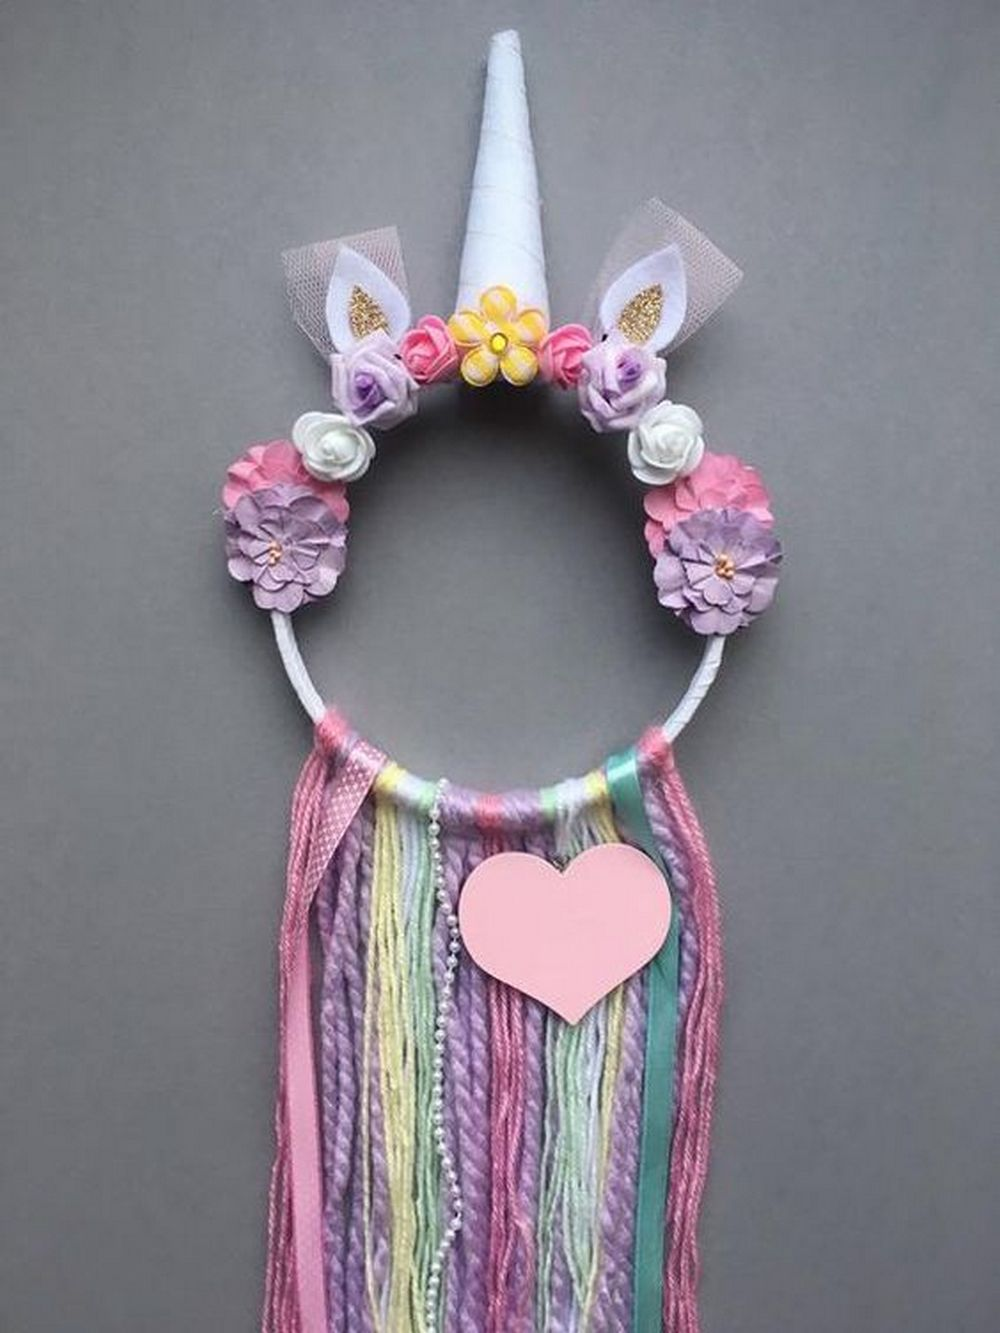 Make Your Own Unicorn Dreamcatcher Craft Projects For